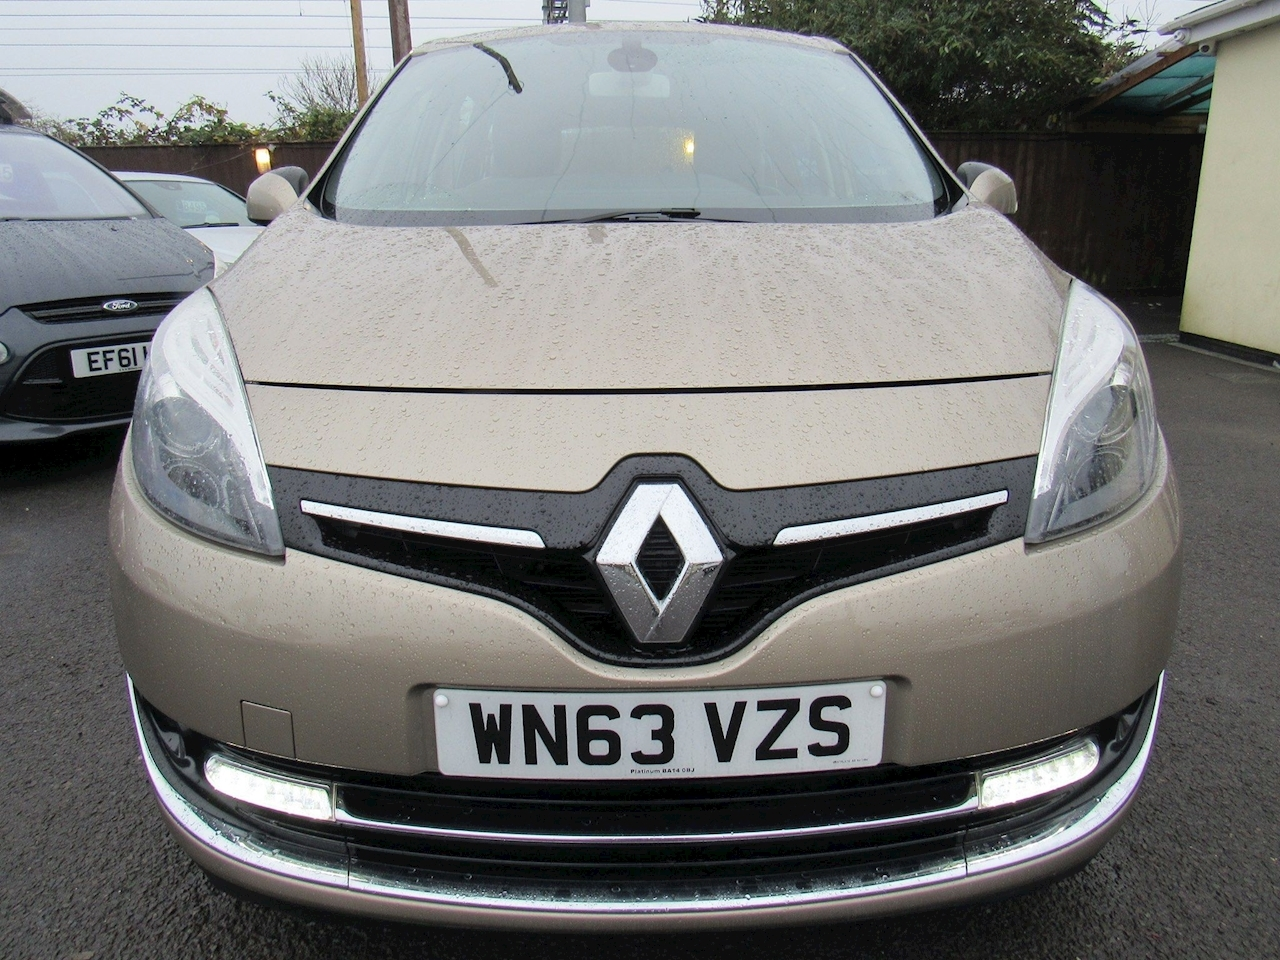 Renault Scenic Grand Dynamique Tomtom Dci S/S Mpv 1.6 Manual Diesel